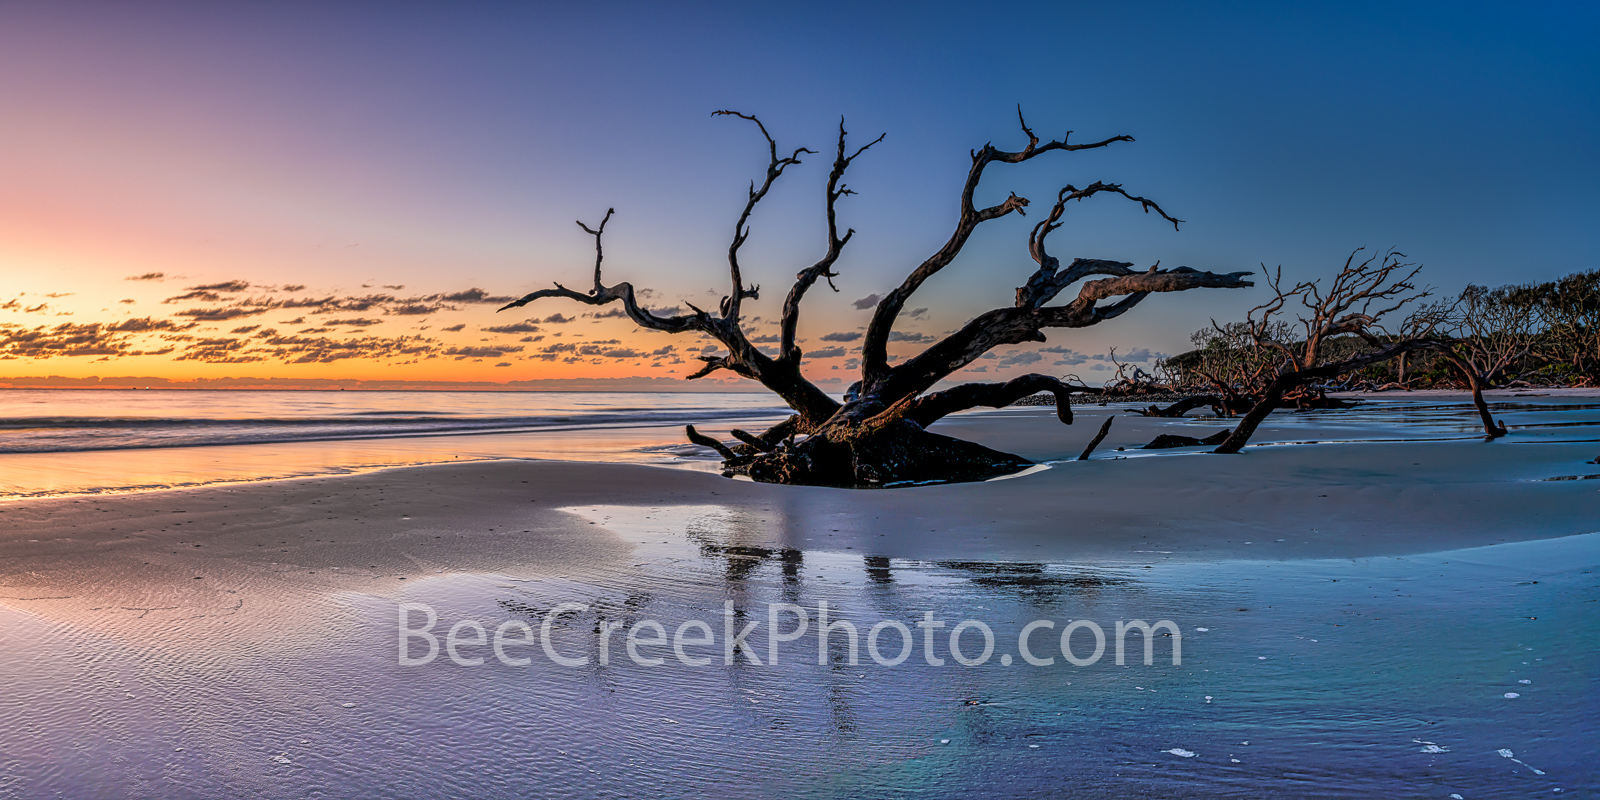 jekyll island, driftwood beach, boneyard beach, sunrise, colorful, sand, alantic ocean, deadwood, east coast, reflections, reflecting, colors, sky, Geogia, wet sand, pano, panorama, Golden Isles,, photo